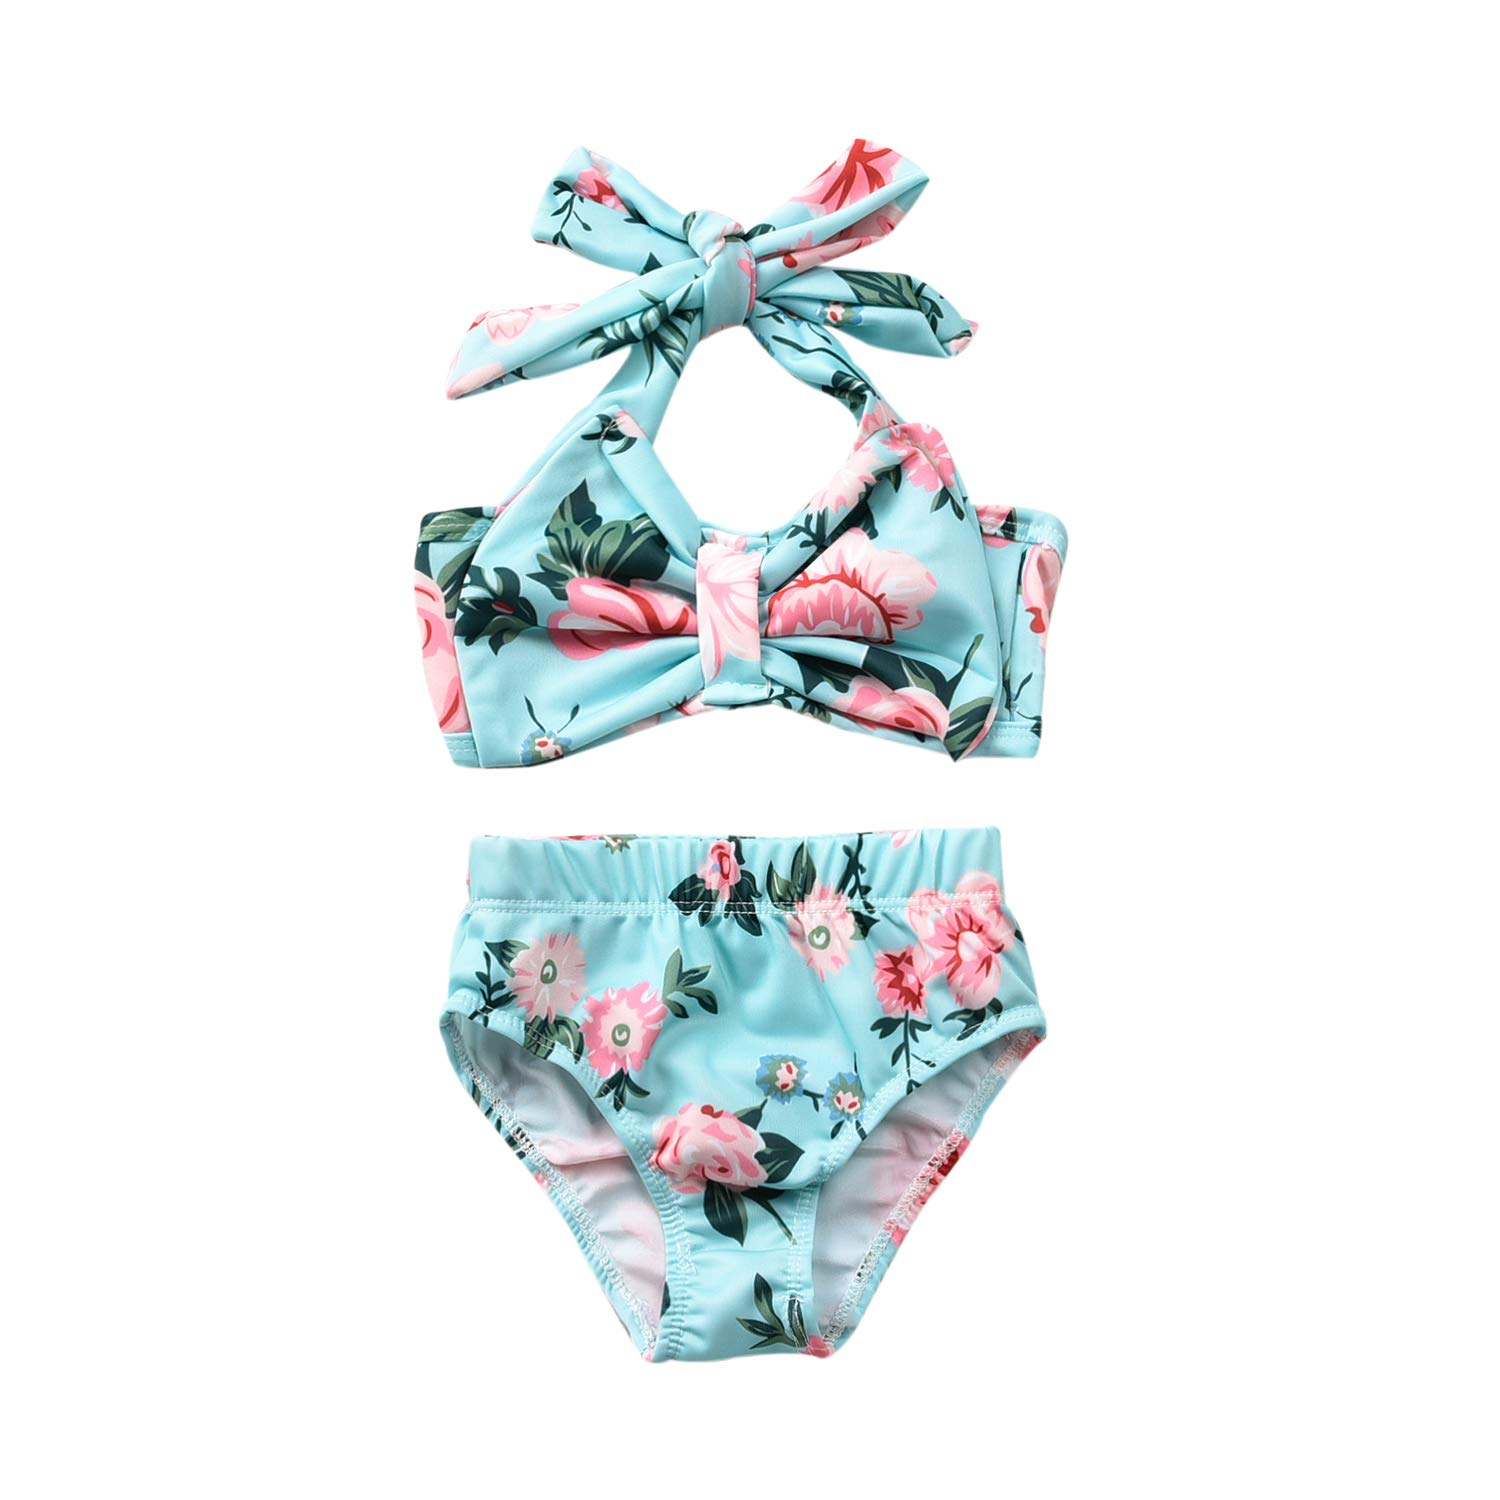 Baby Girl Two Piece Swimsuit, Toddler Girls Halter Bowknot Top Bikini Floral Bathing Suit